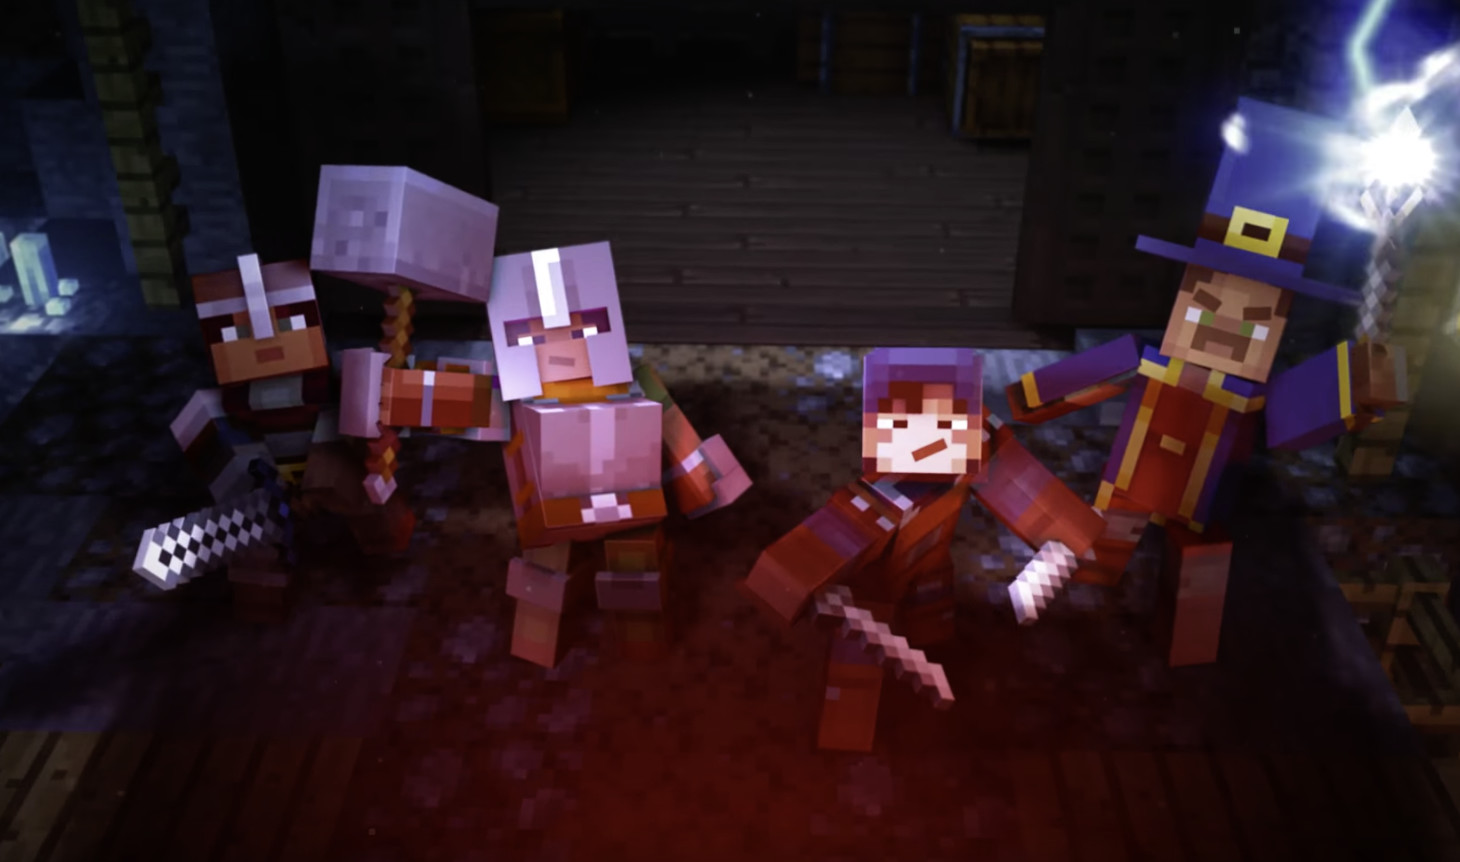 Minecraft: Dungeons is a dungeon crawler spin-off for up to four players